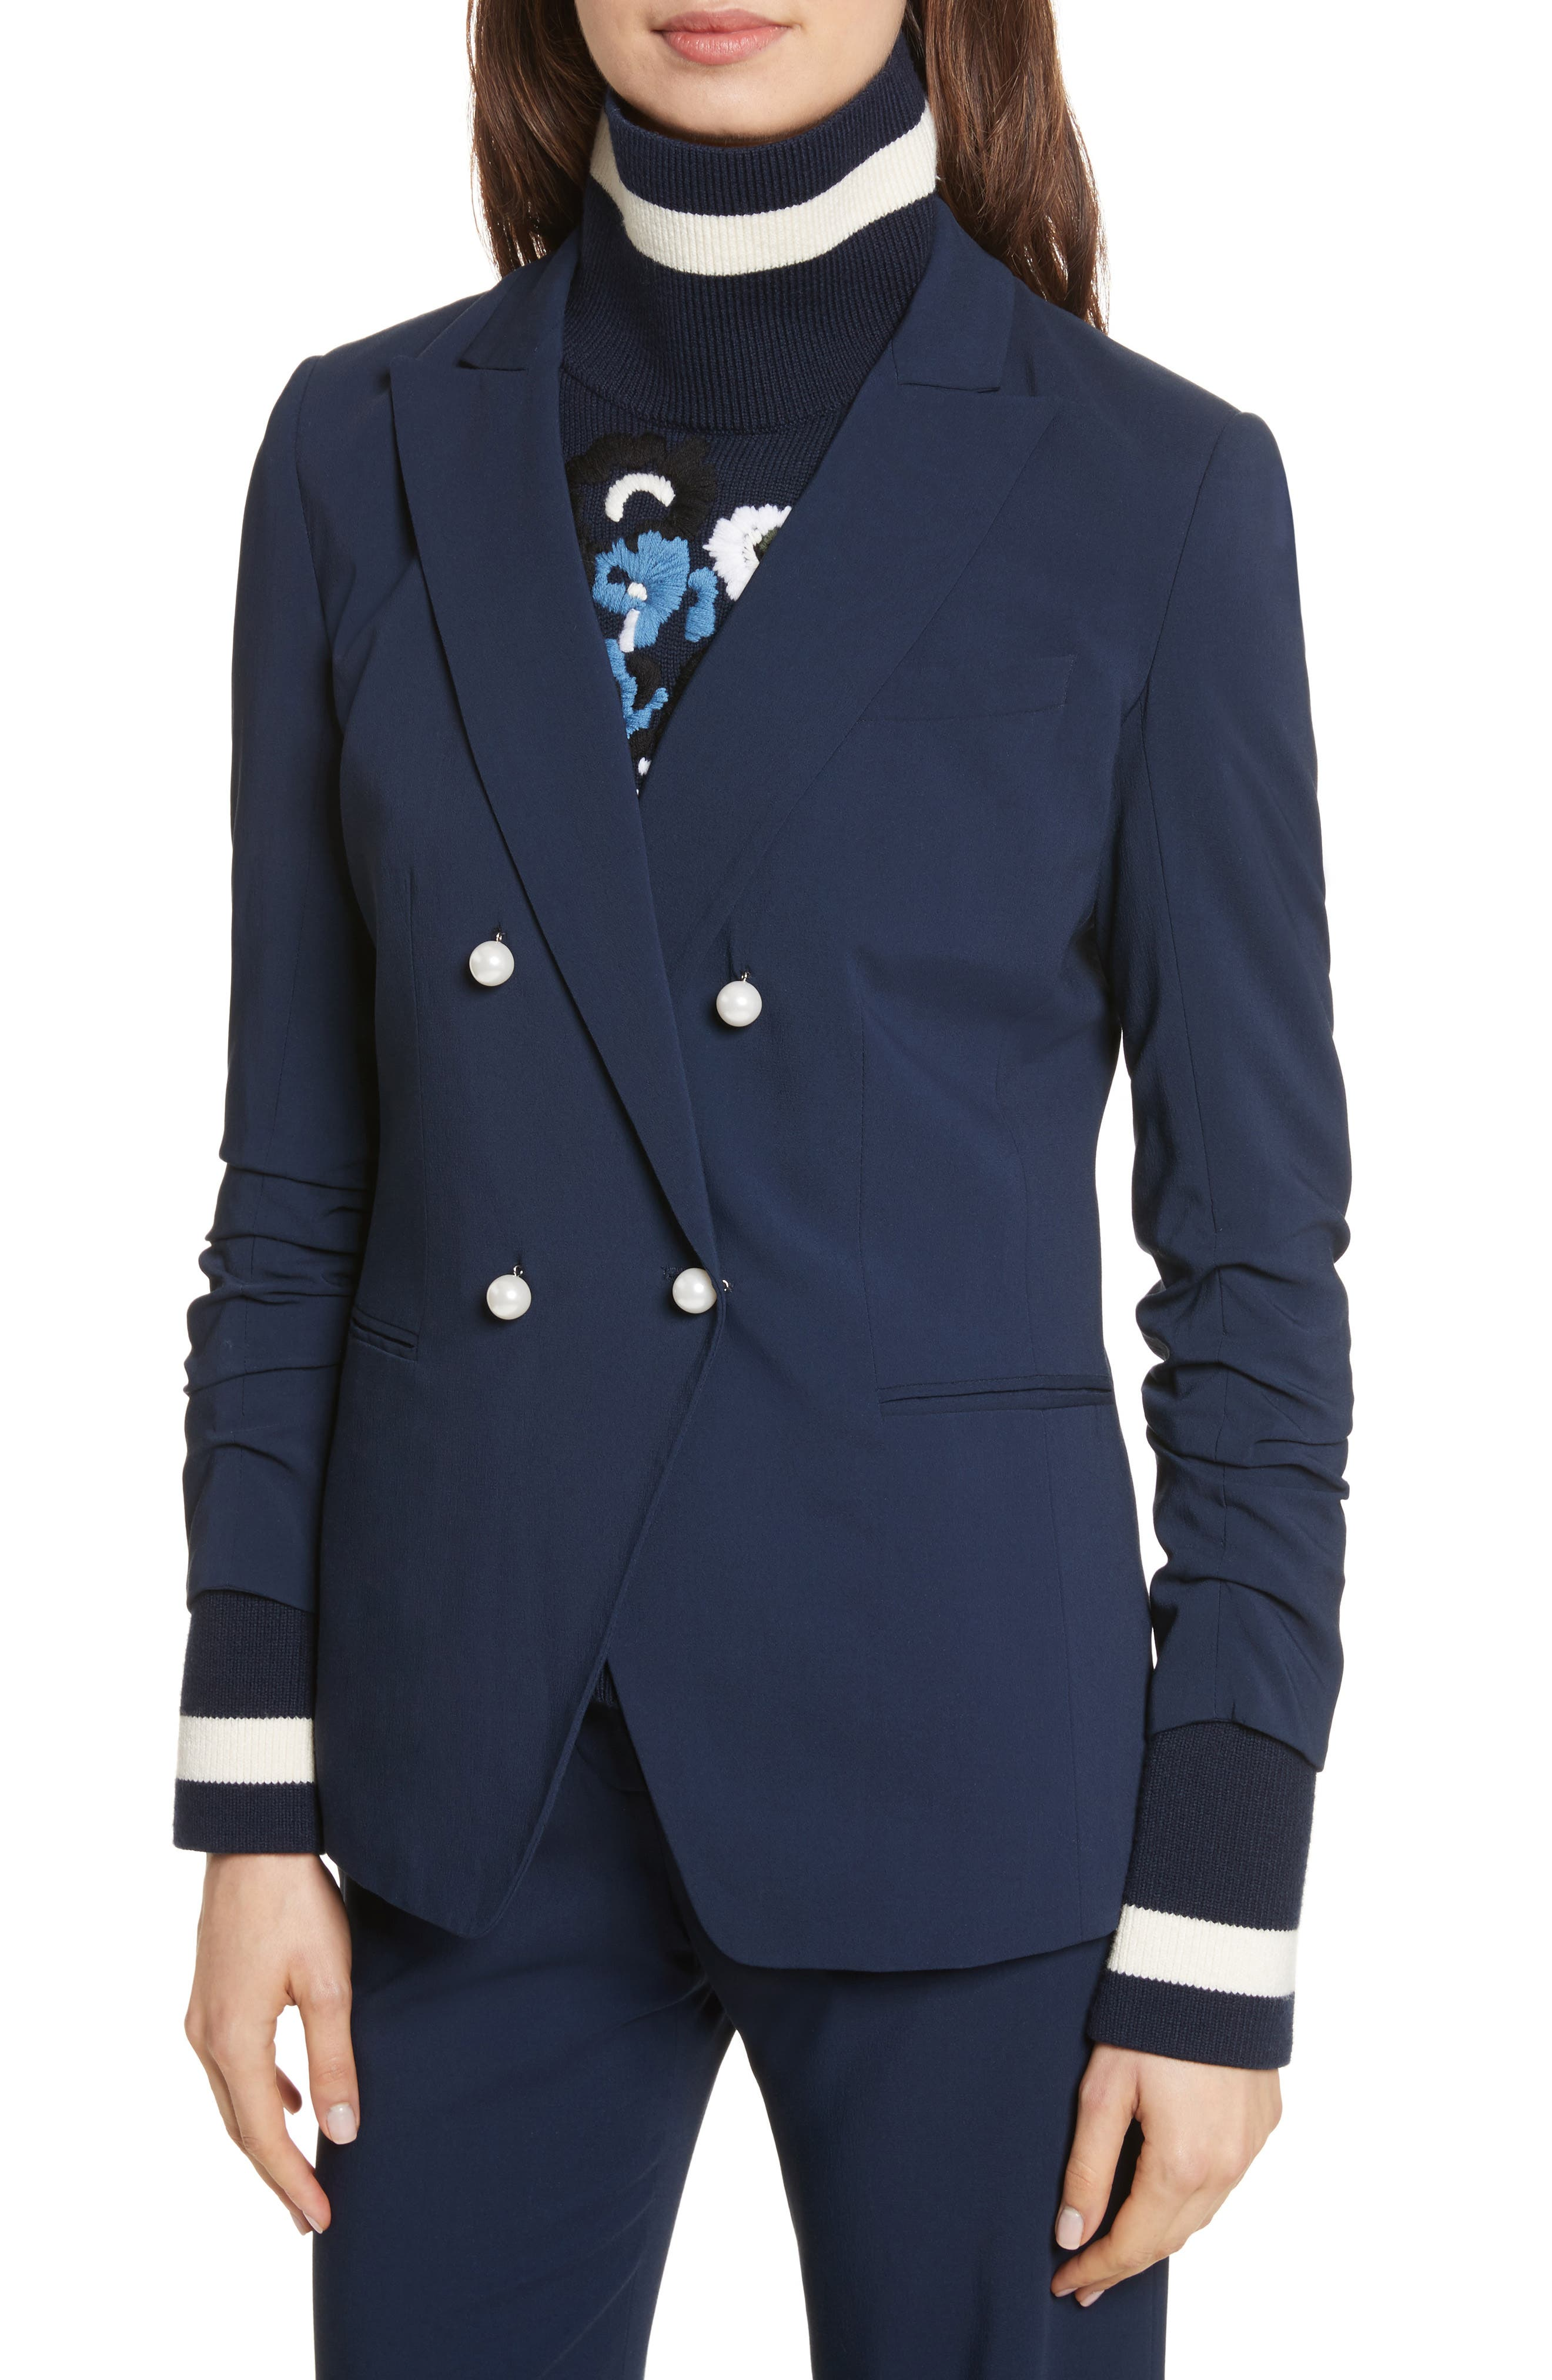 Whit Double Breasted Blazer,                             Alternate thumbnail 4, color,                             410